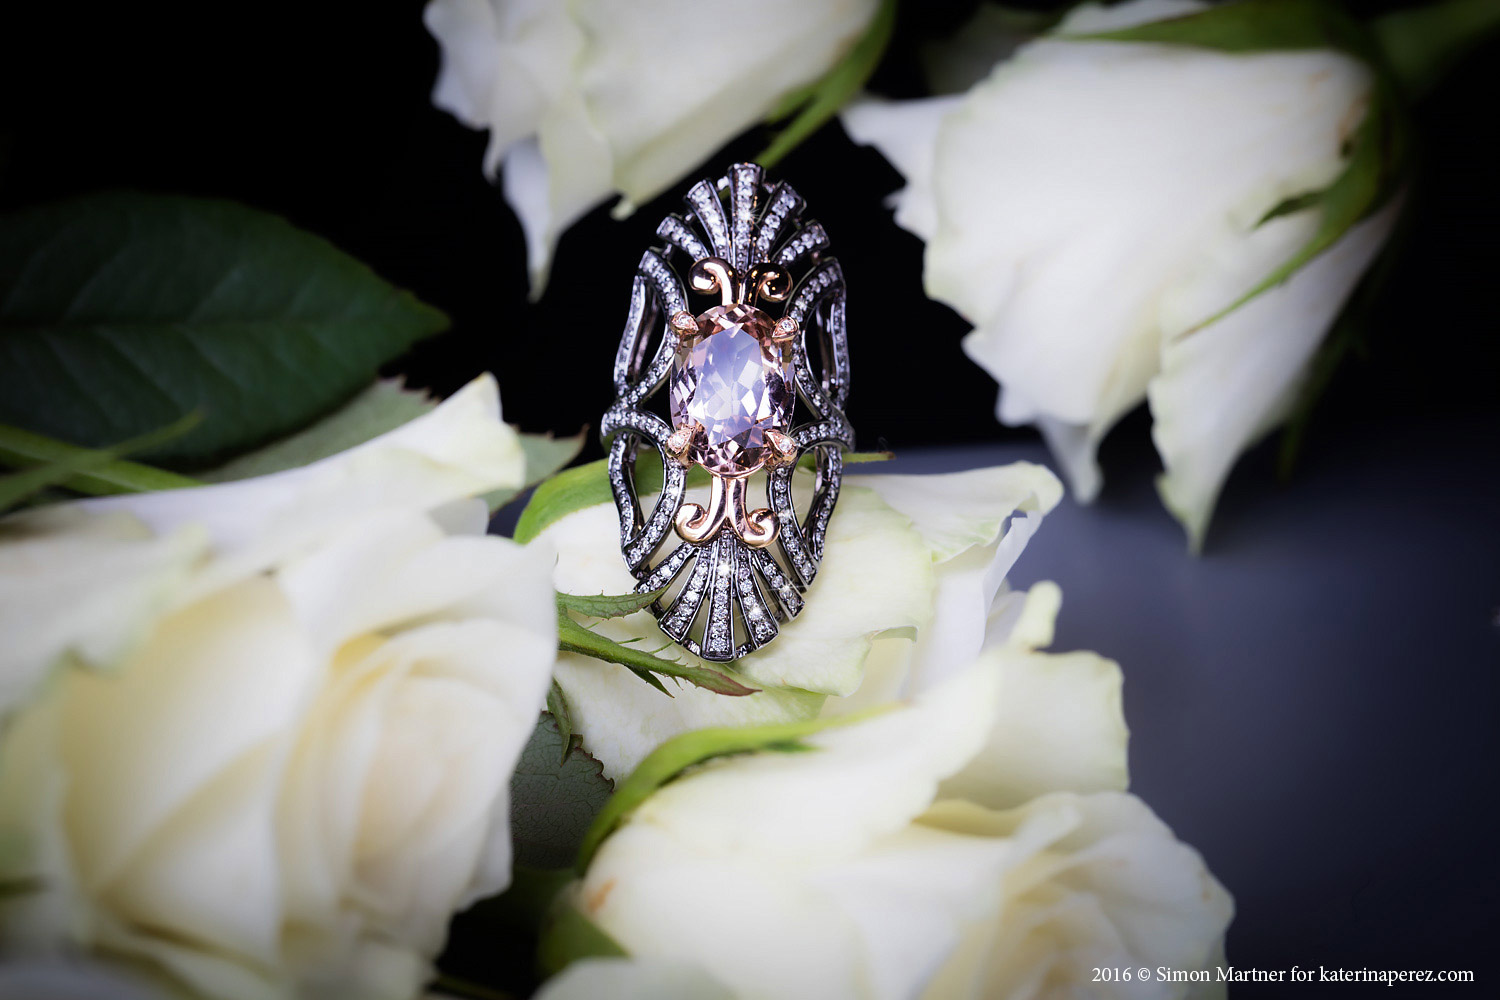 Bochic morganite, diamonds and 18K white gold ring – £6.000